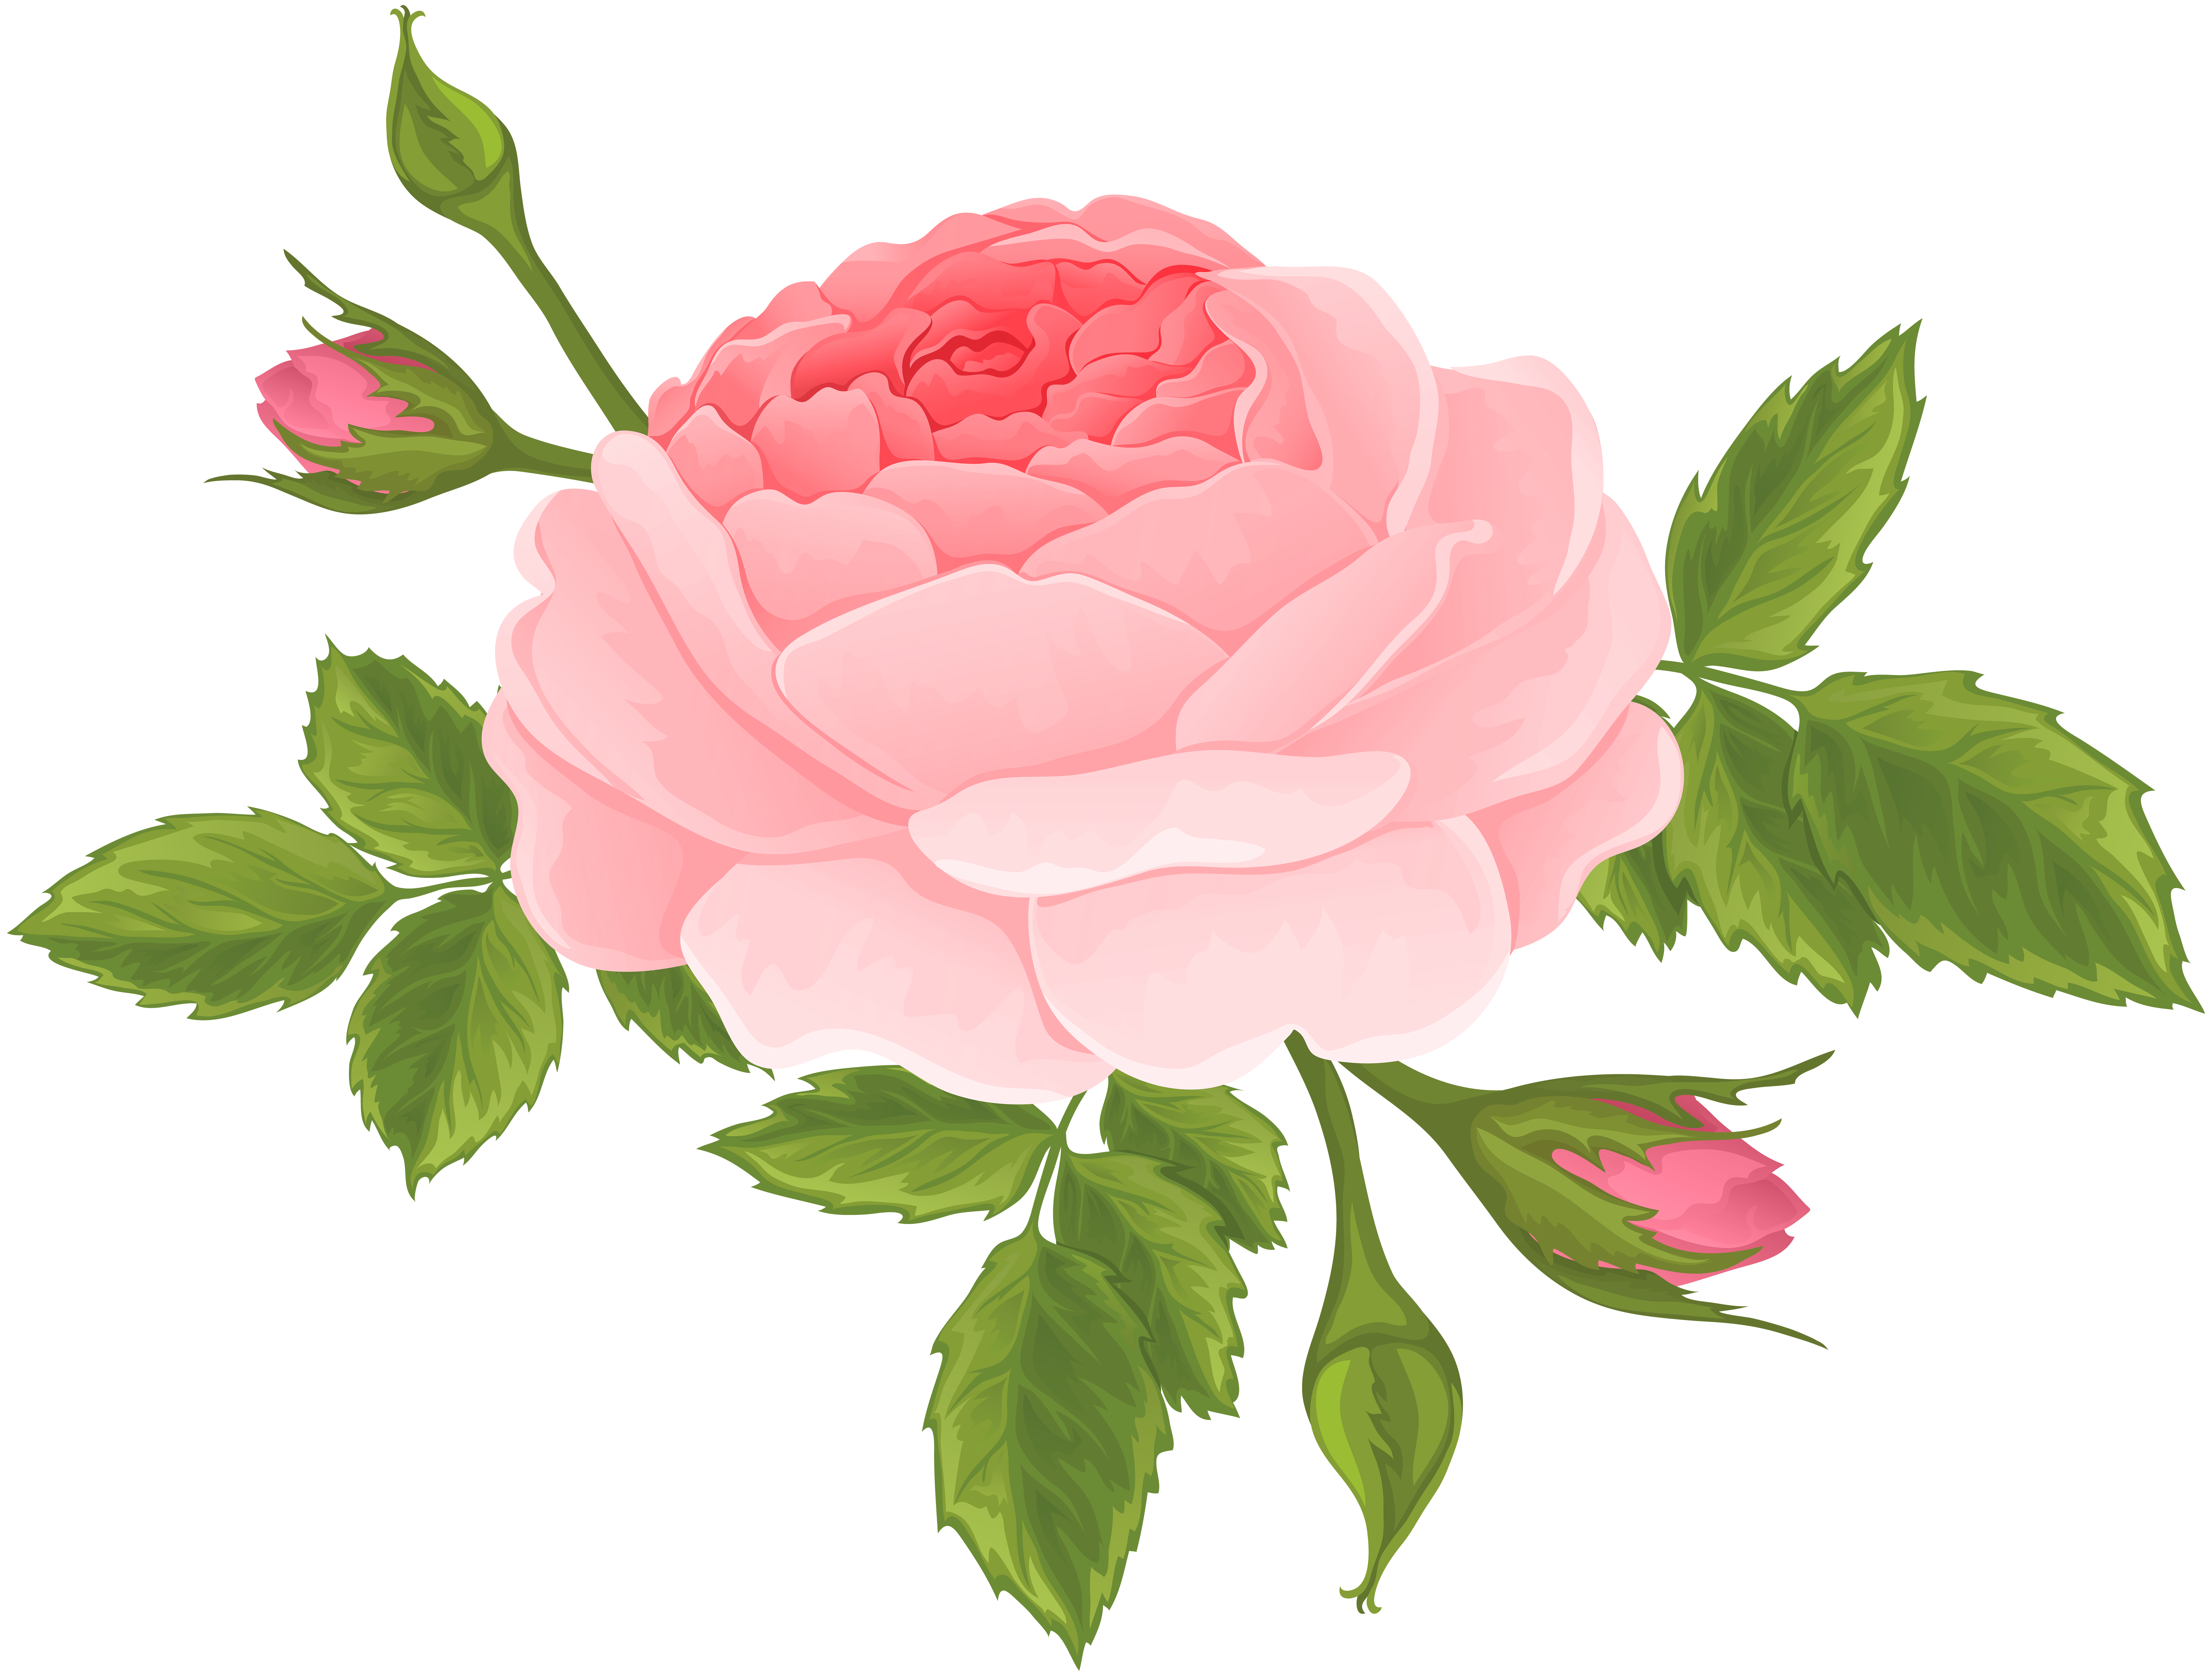 Rose clipart blossom. Pink with buds png